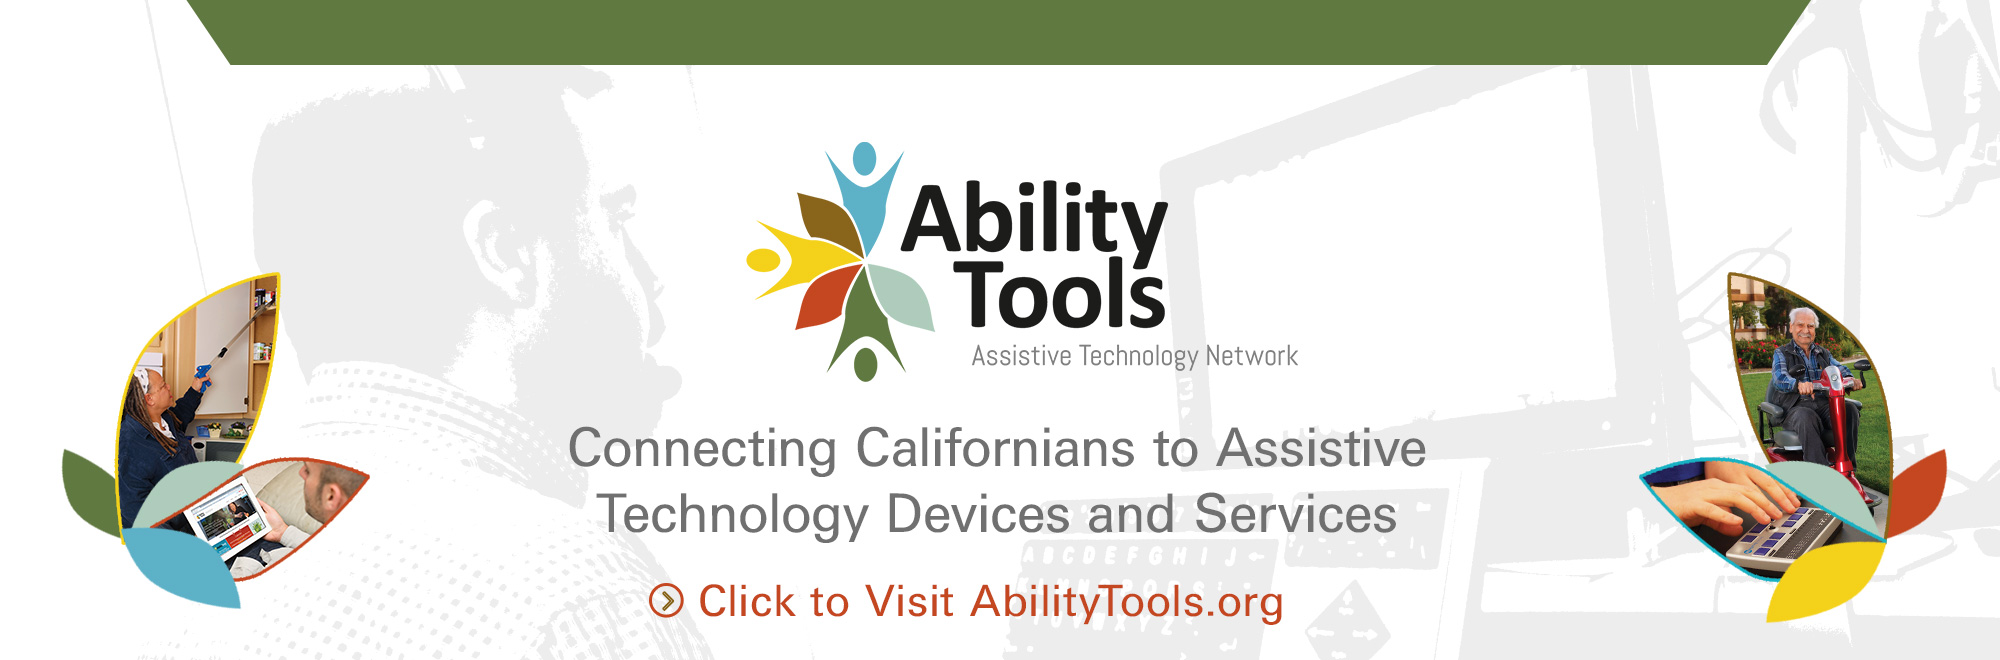 Banner of Ability Tools Assistive Technology Network. Connecting Californians to Assistive Technology and Services.